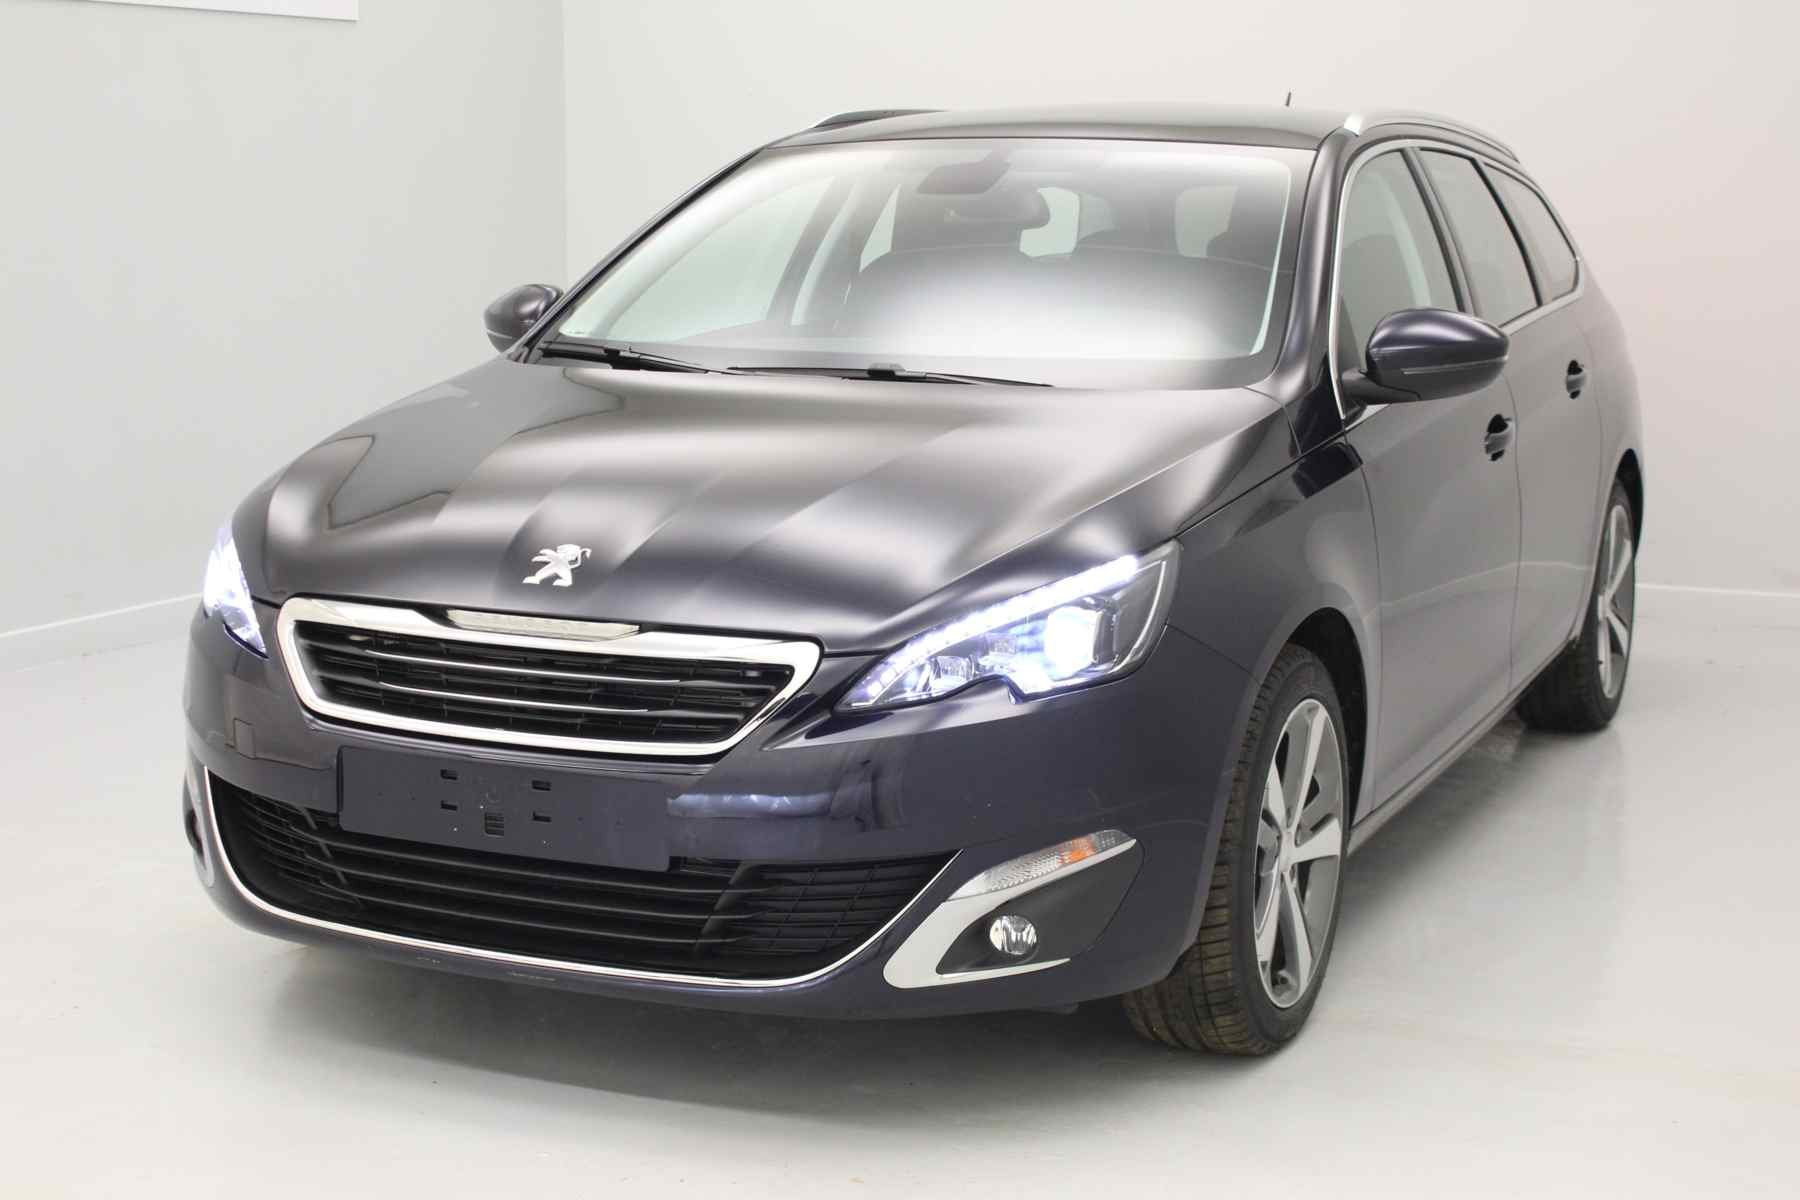 PEUGEOT 308 SW 1.6 BlueHDi 120ch S&S BVM6 Allure Dark Blue+ Toit panoramique avec options